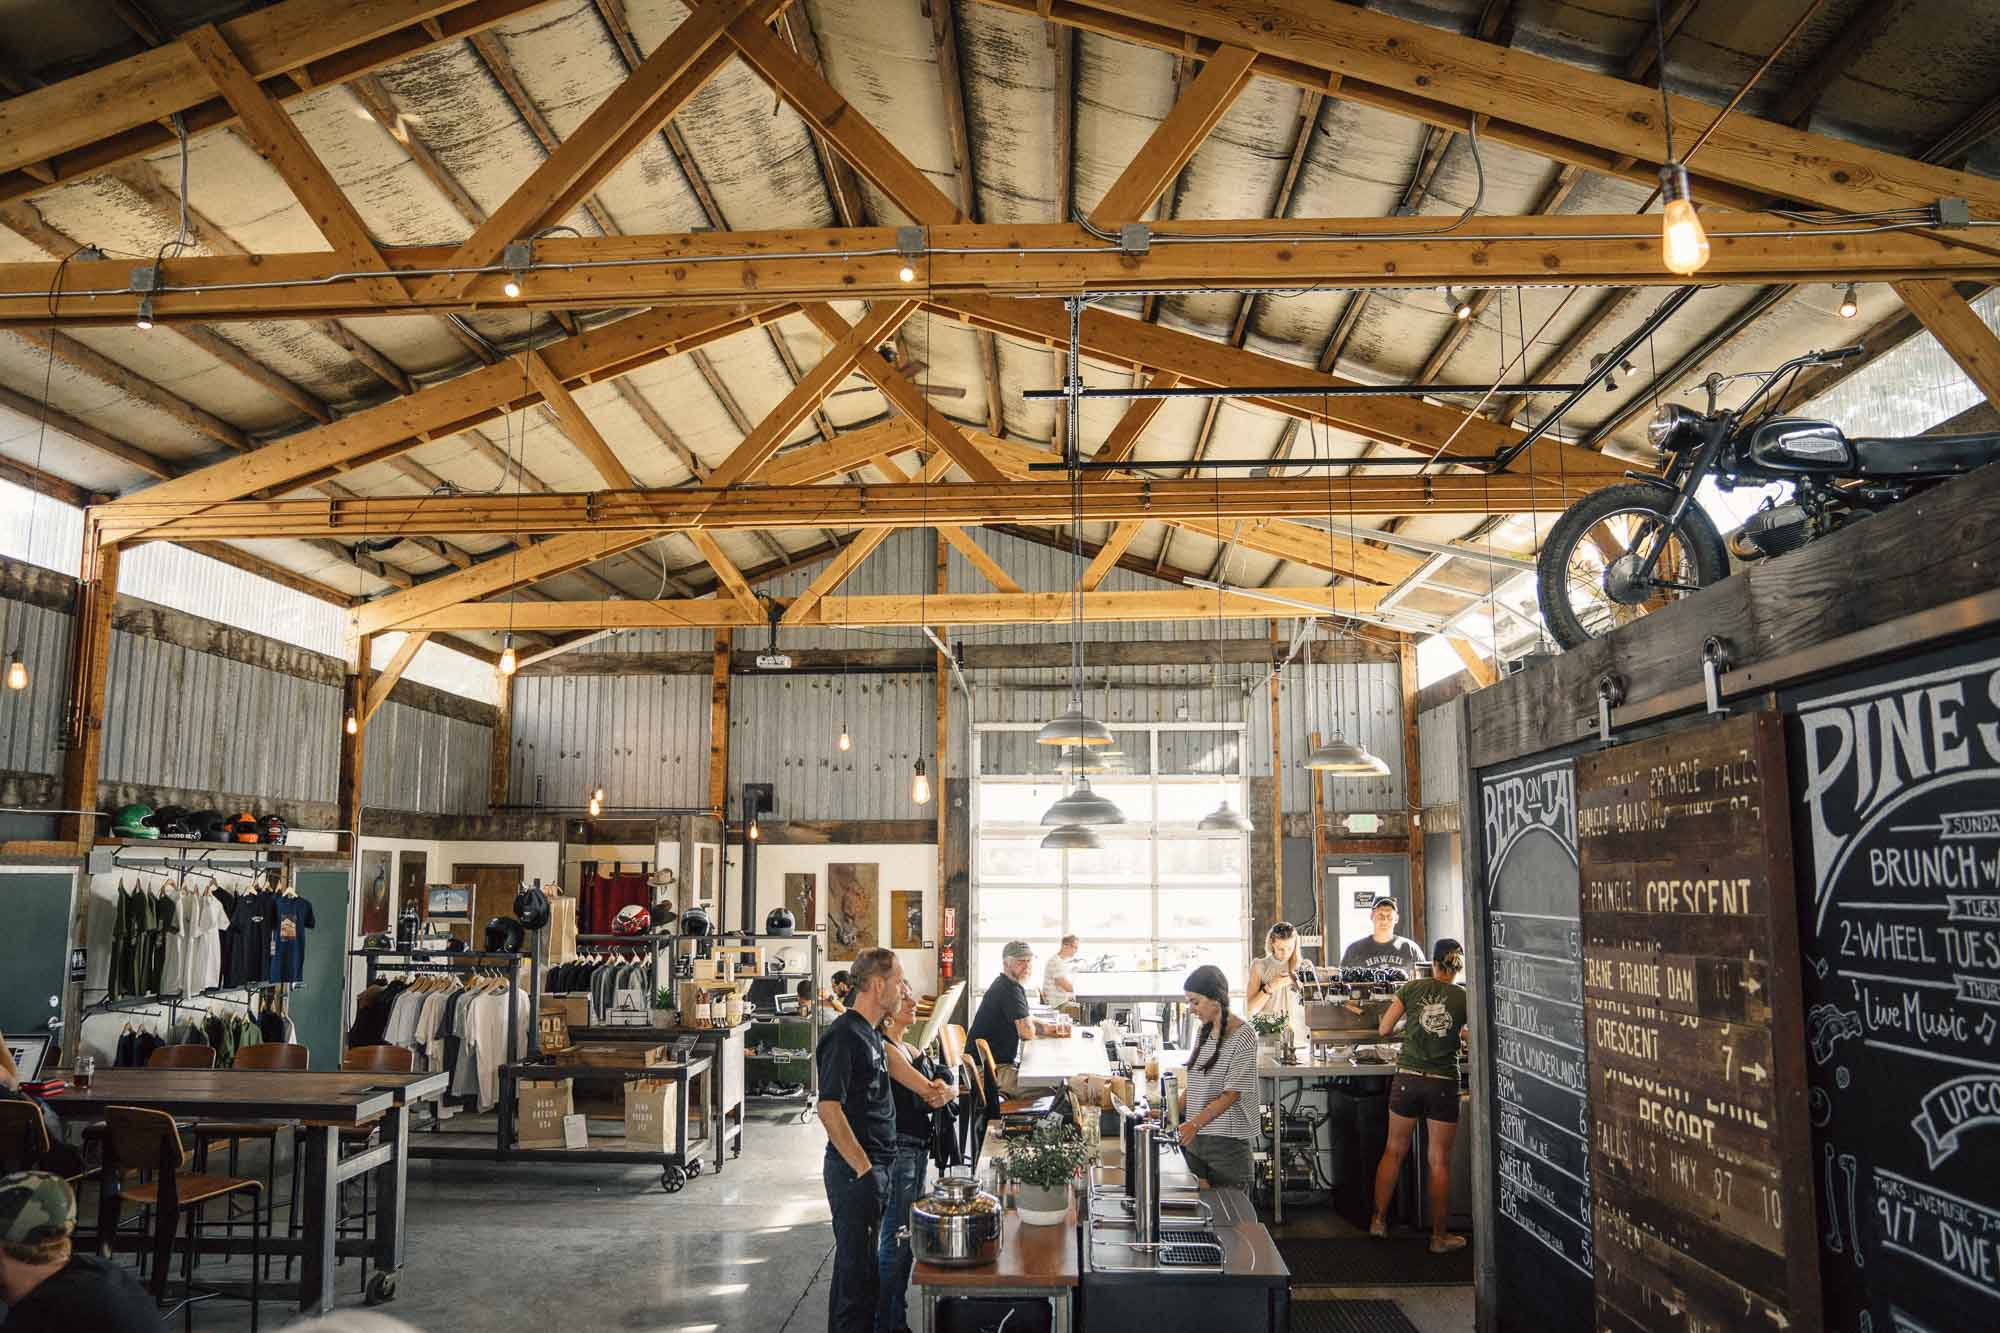 The warehouse of Spoken moto in Bend Oregon for Dirt Road Travels